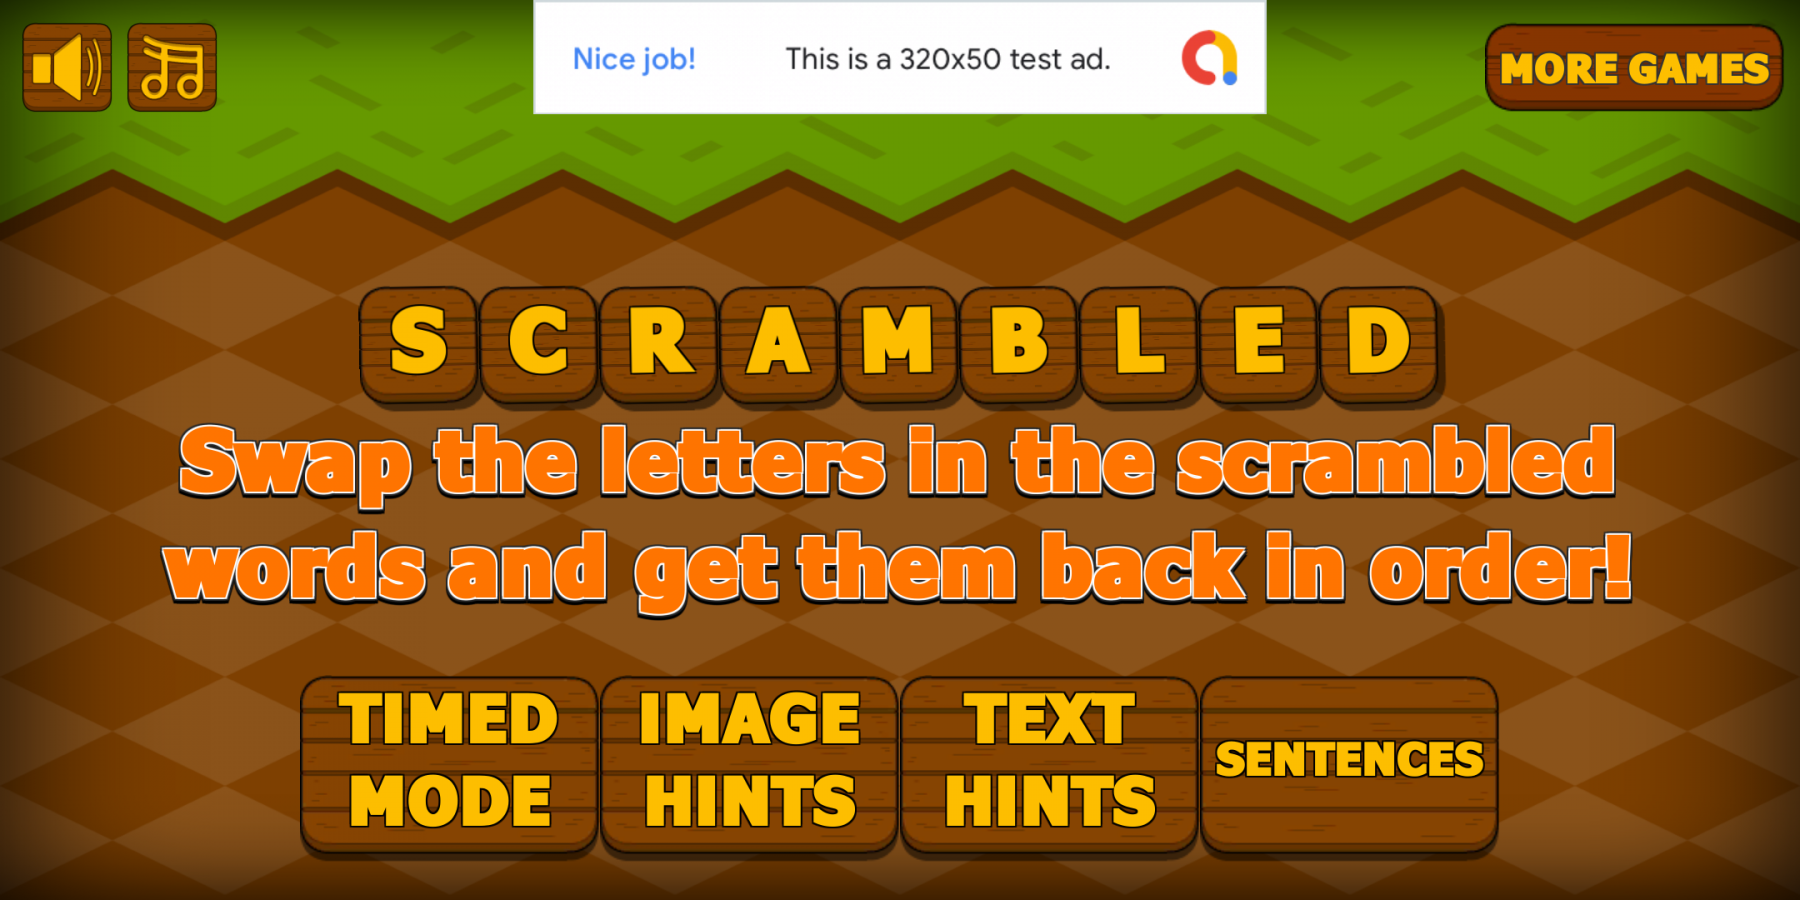 Screenshot_2019-07-16-19-09-35-109_com.word_.game_